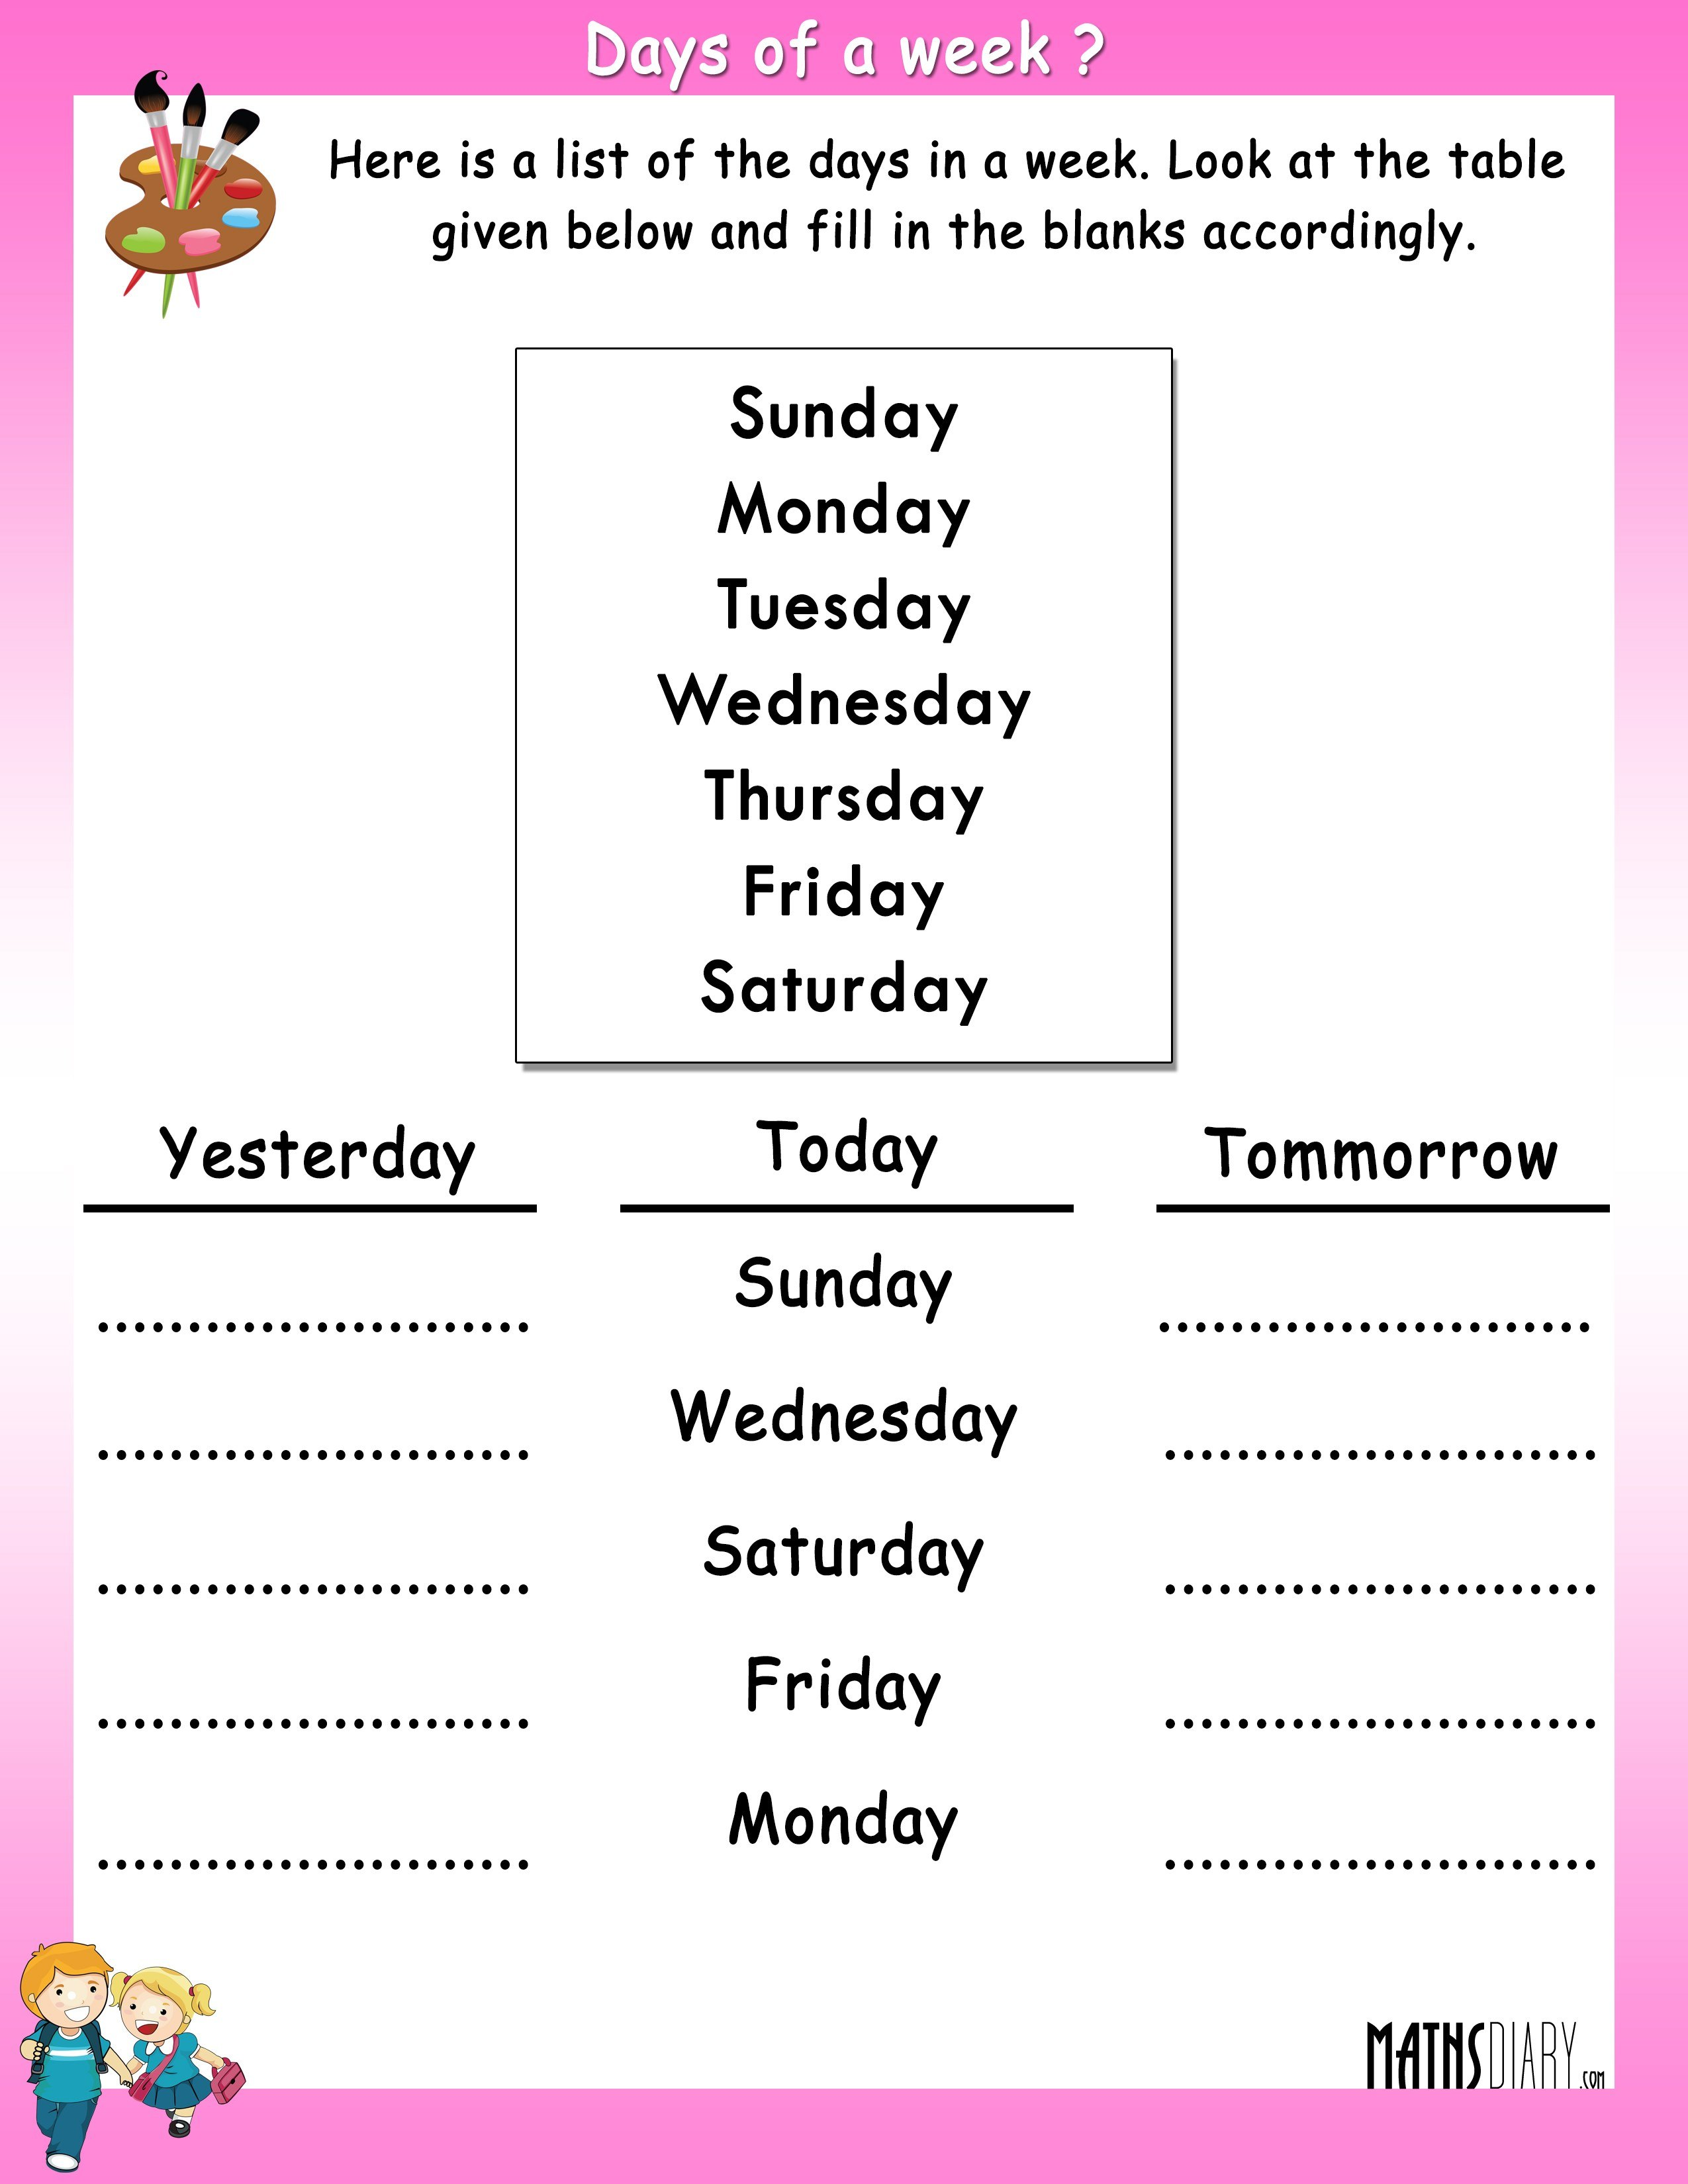 Printable Second Grade (Grade 2) Worksheets, Tests, and Activities